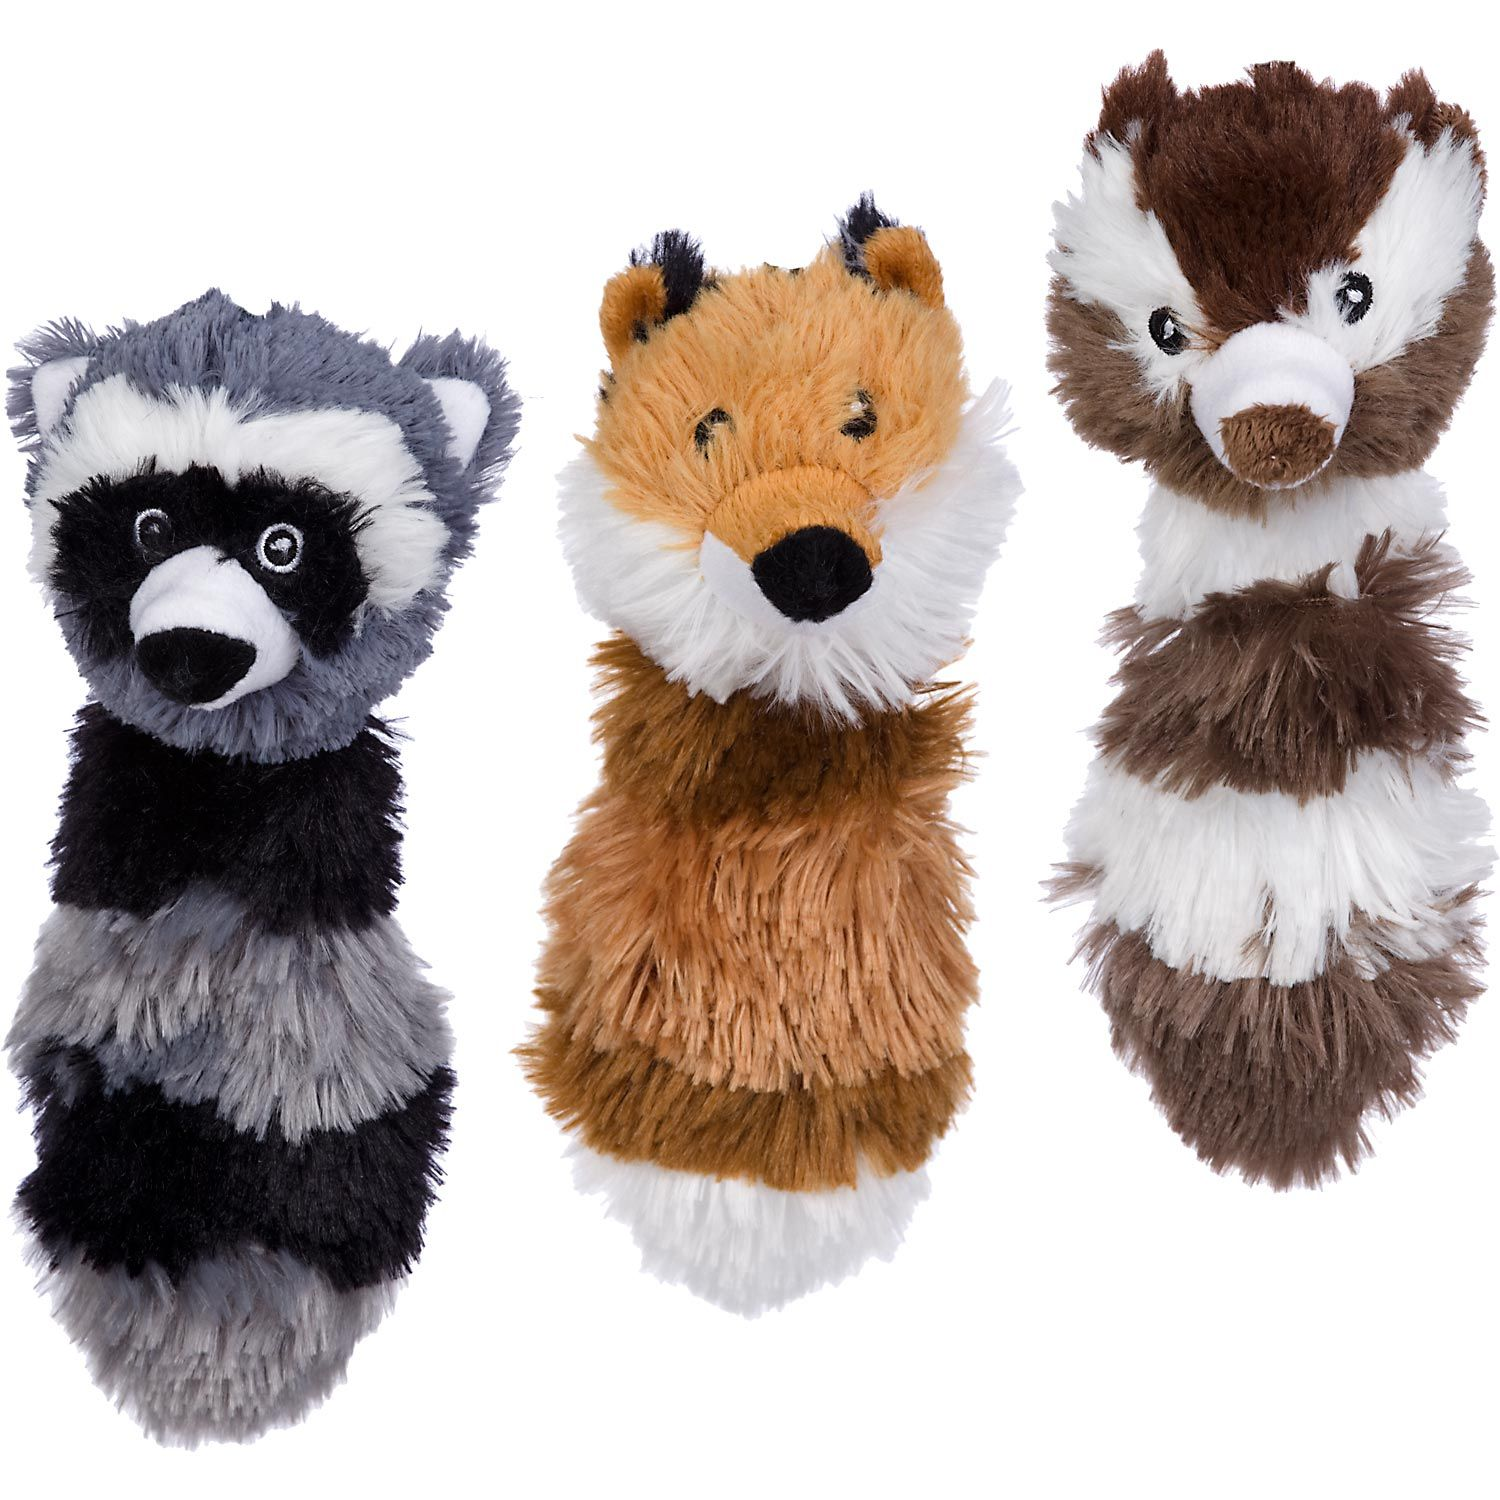 Petco Squeaky Head Raccoon Chipmunk Or Fox Dog Toy A Must Have